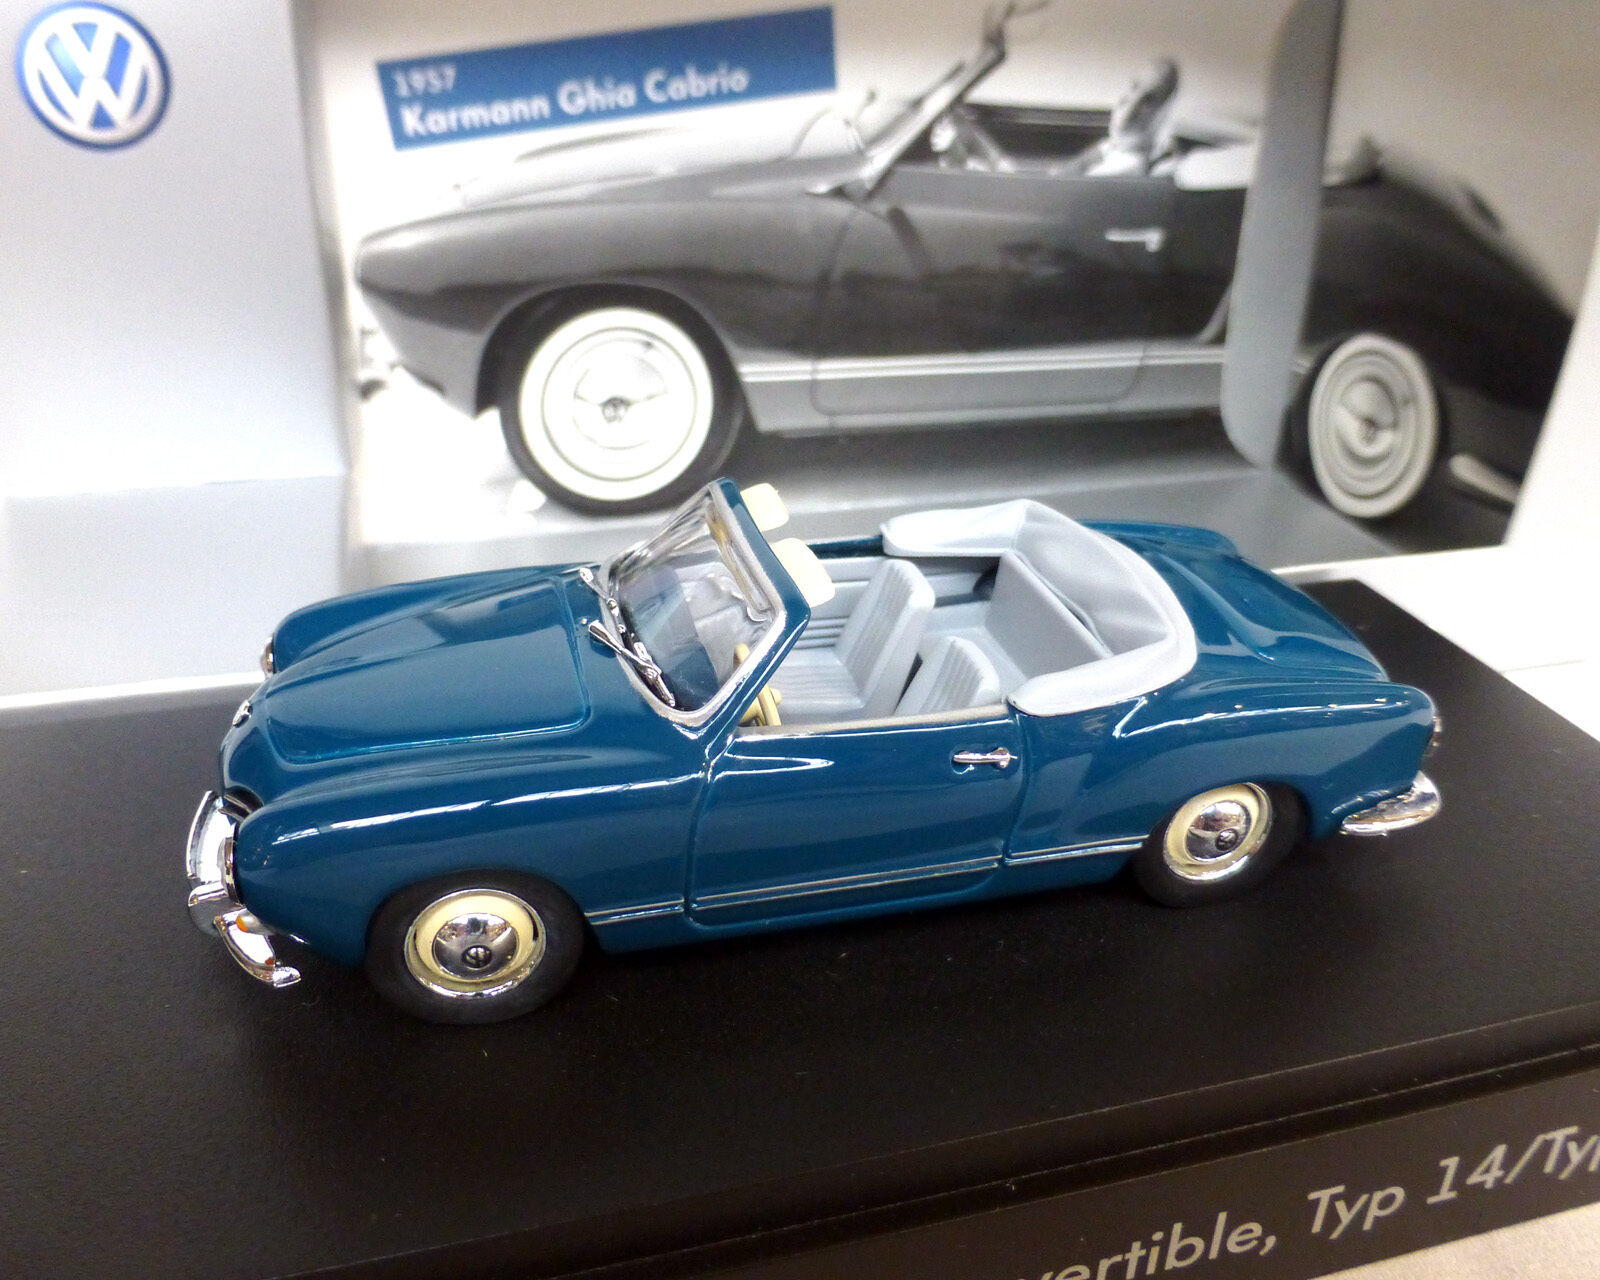 VW Karmann Ghia Cabriolet, Type 14, bluee-Green, 1 43